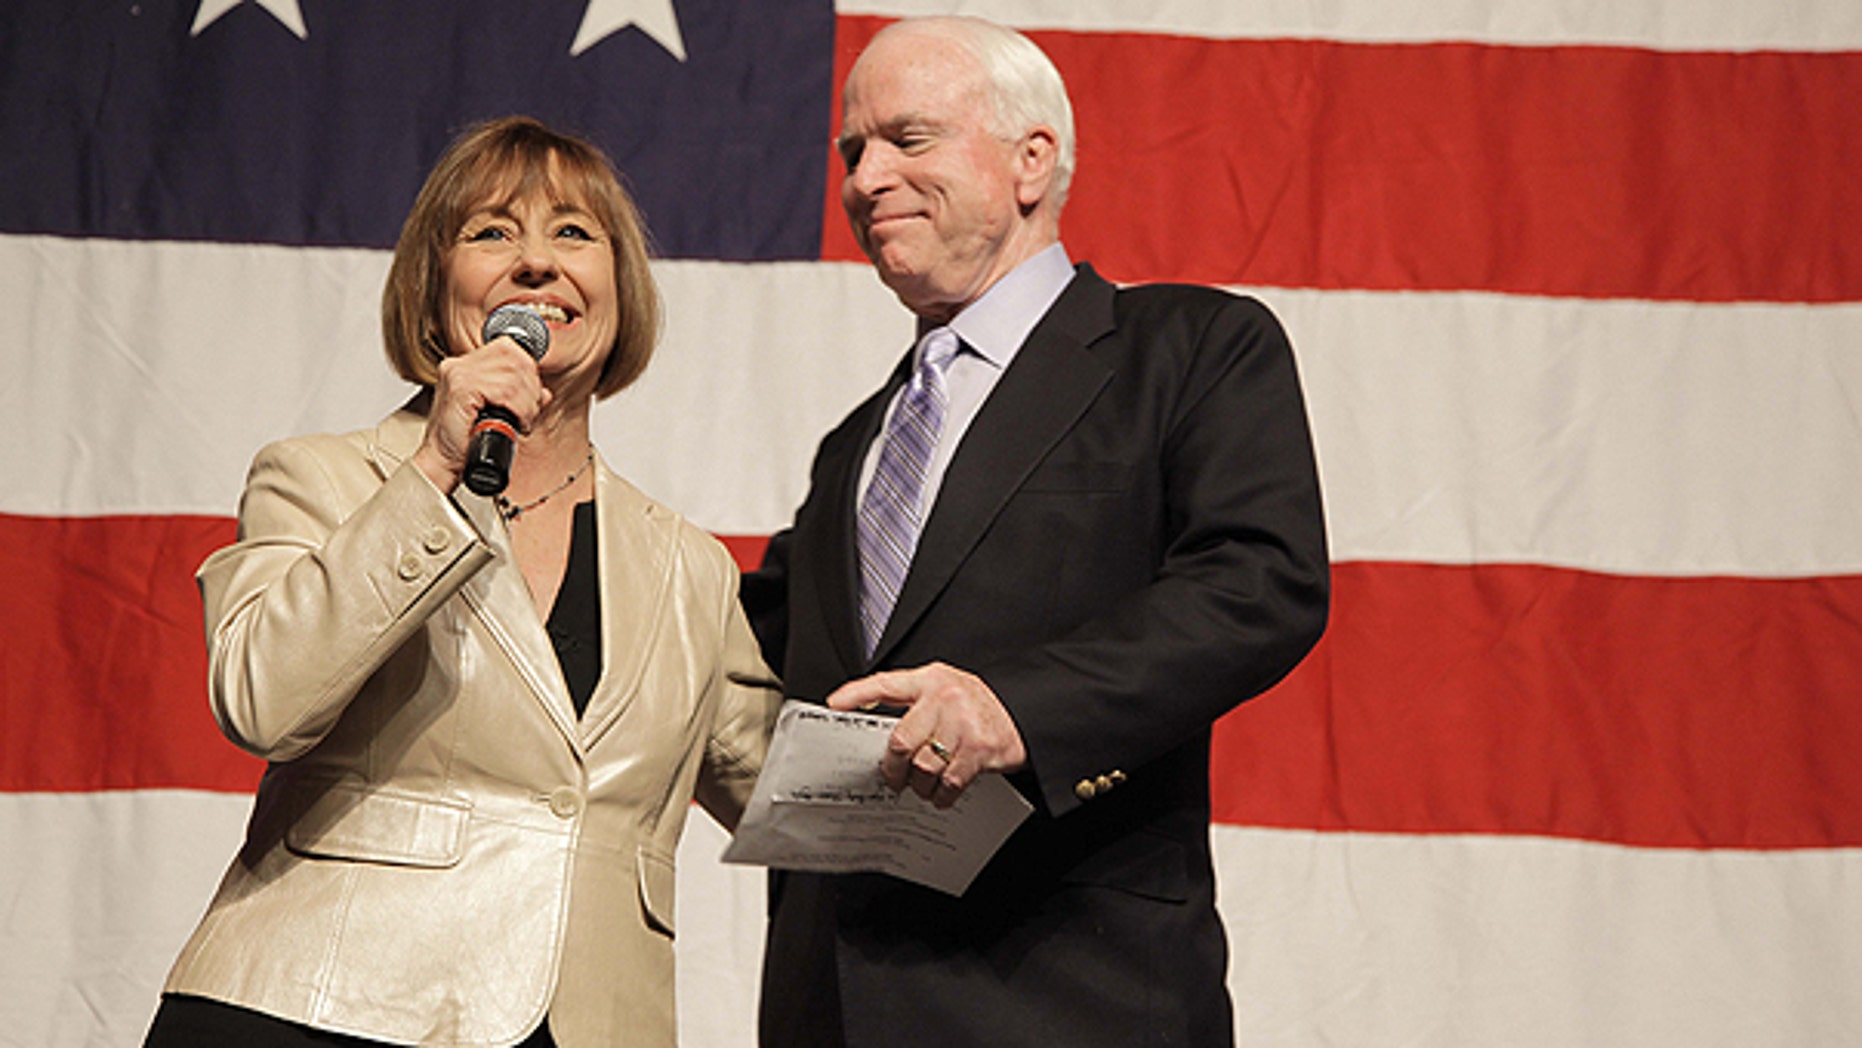 Oct. 29: Nevada Senate candidate Sharron Angle, left, introduces Arizona Sen. John McCain during a Get Out the Vote rally in Las Vegas